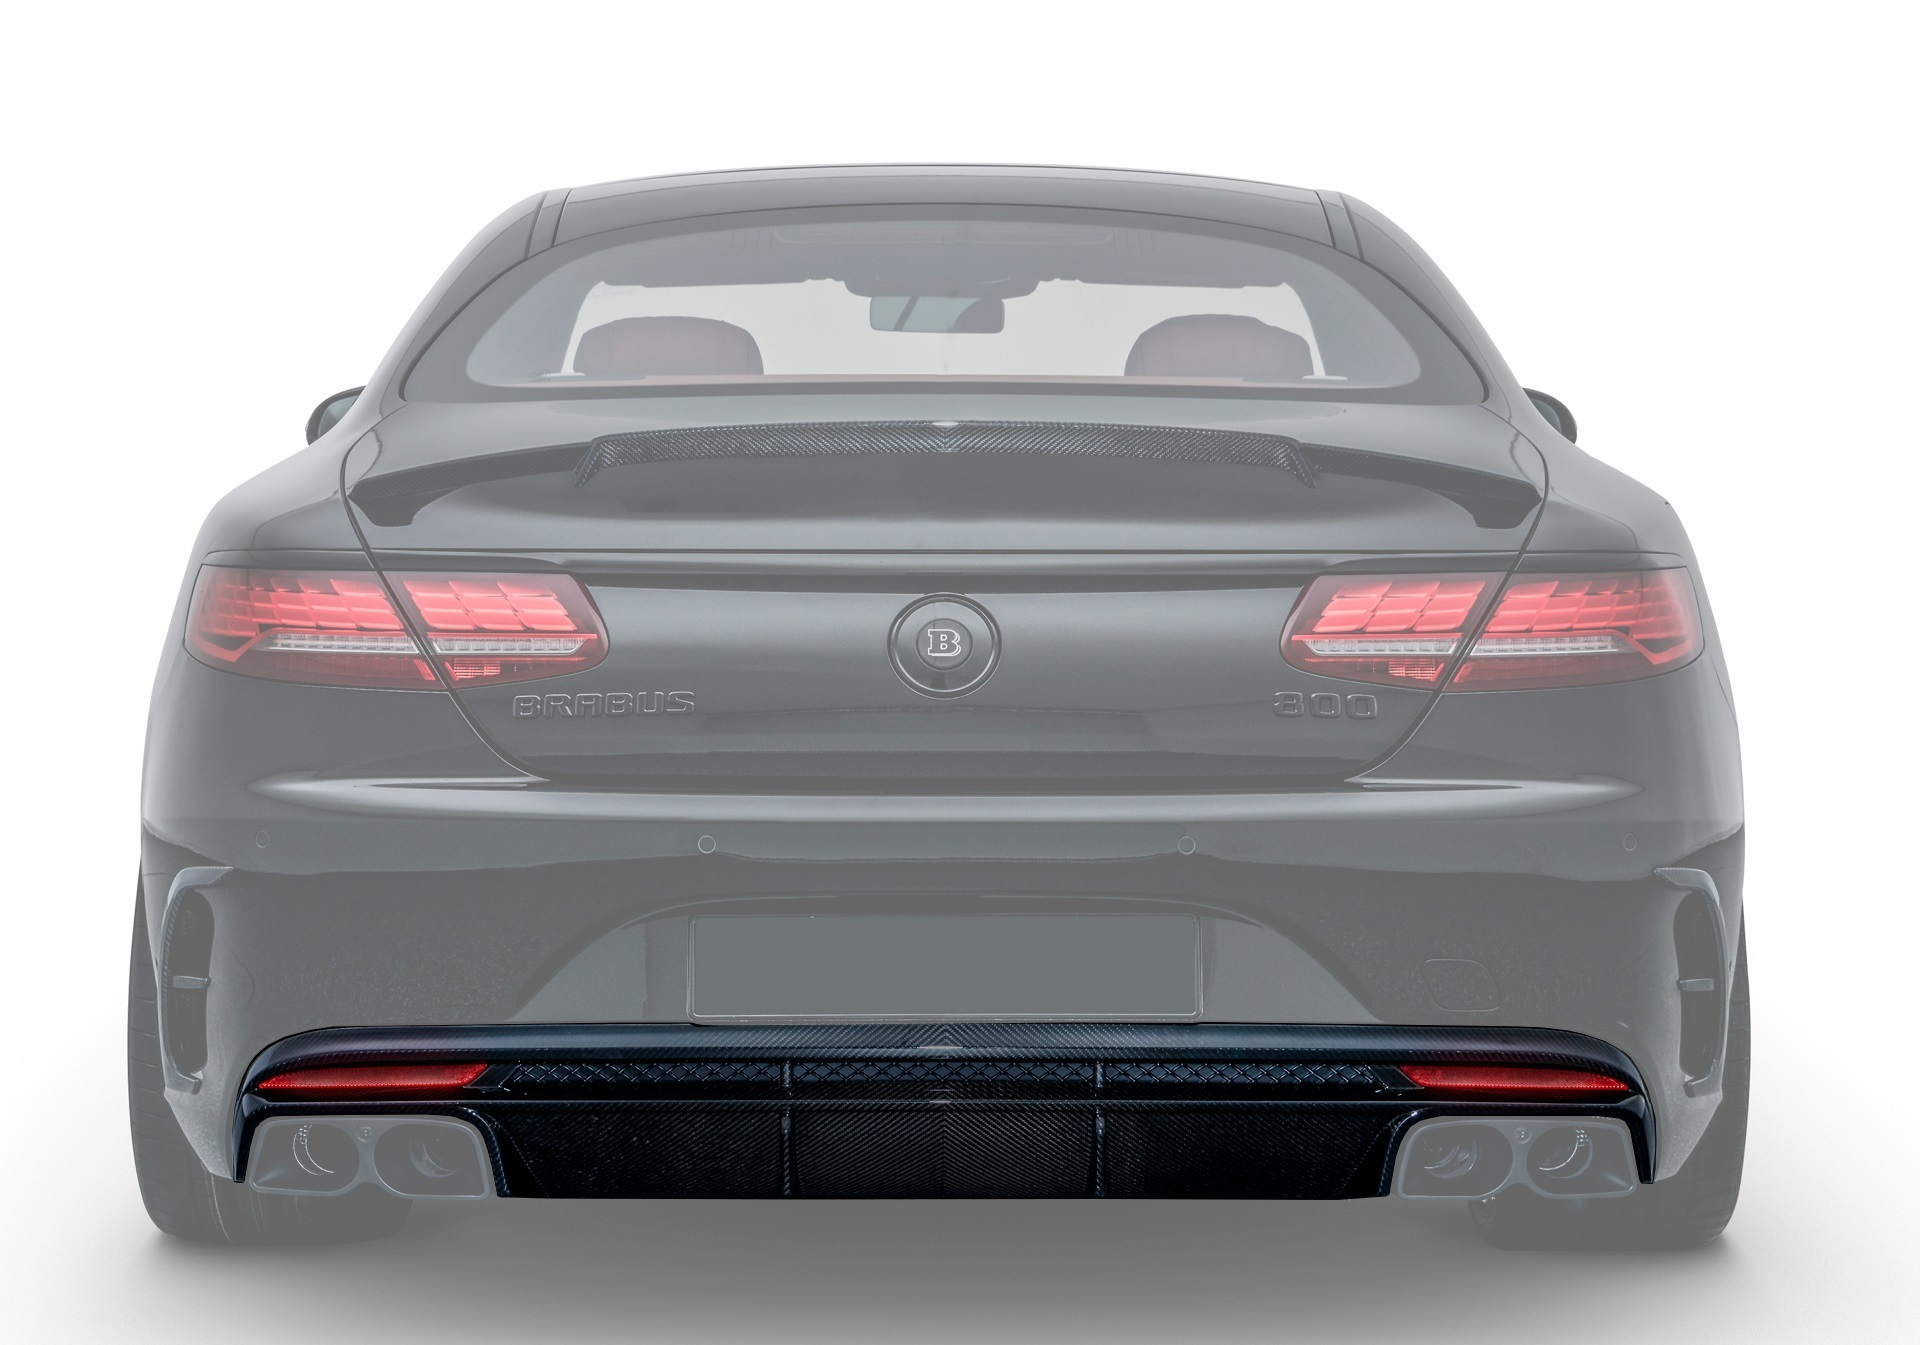 Hodoor Performance Carbon fiber rear bumper diffuser 63 AMG Brabus Style (2) for Mercedes S-class coupe C217 new model